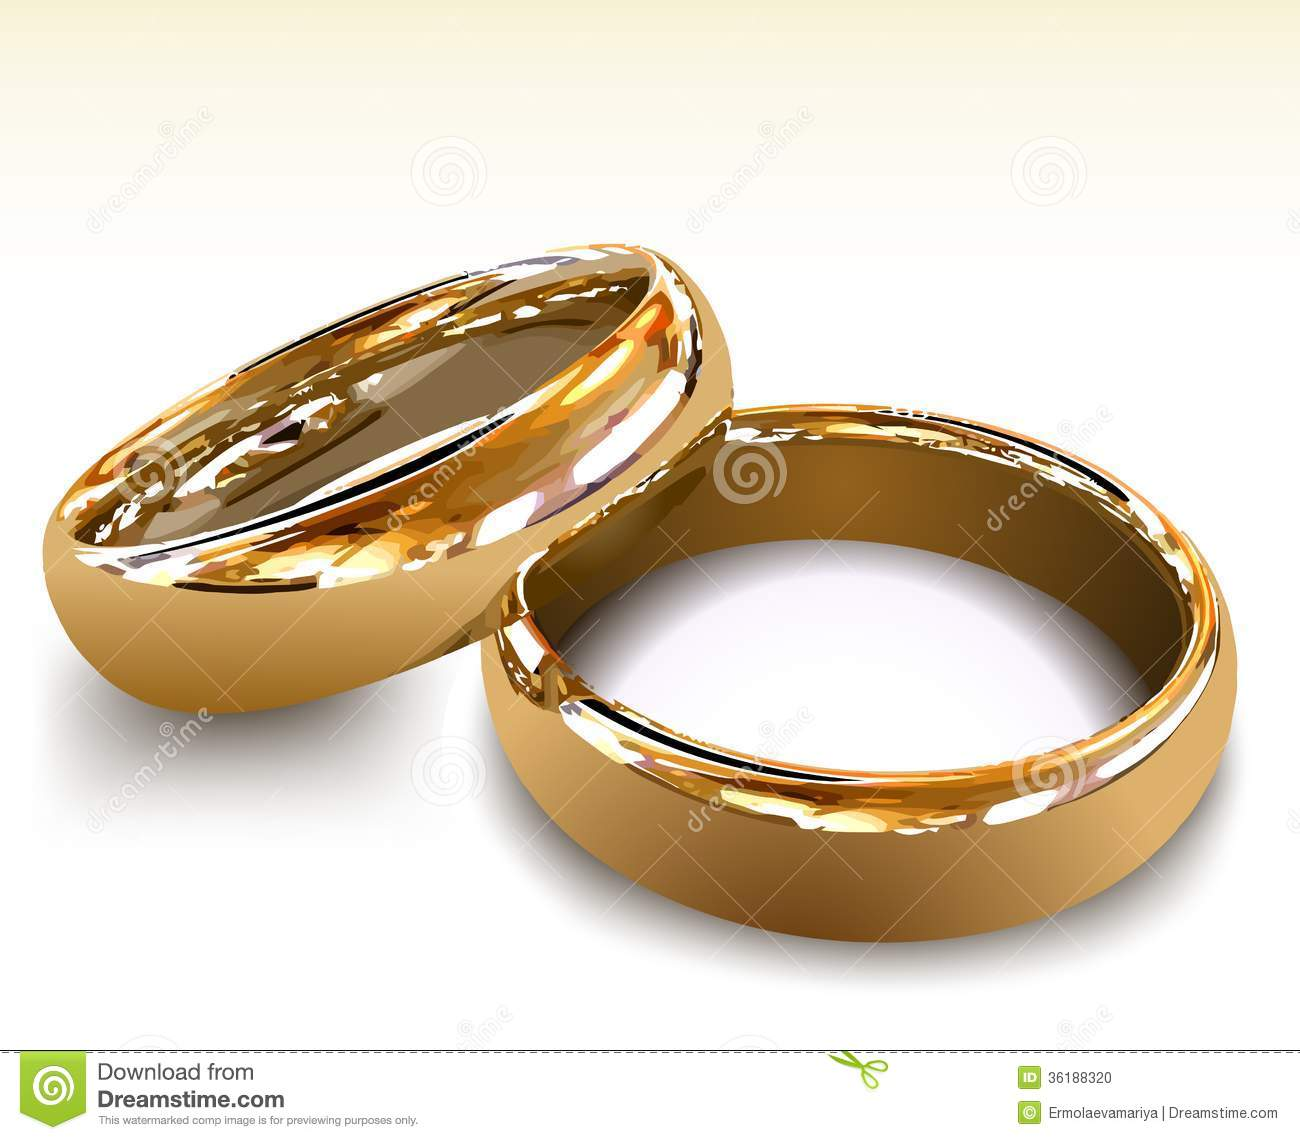 Wedding Rings For Male And Female Gold Wedding Rings Vector Illustration Stock Vector